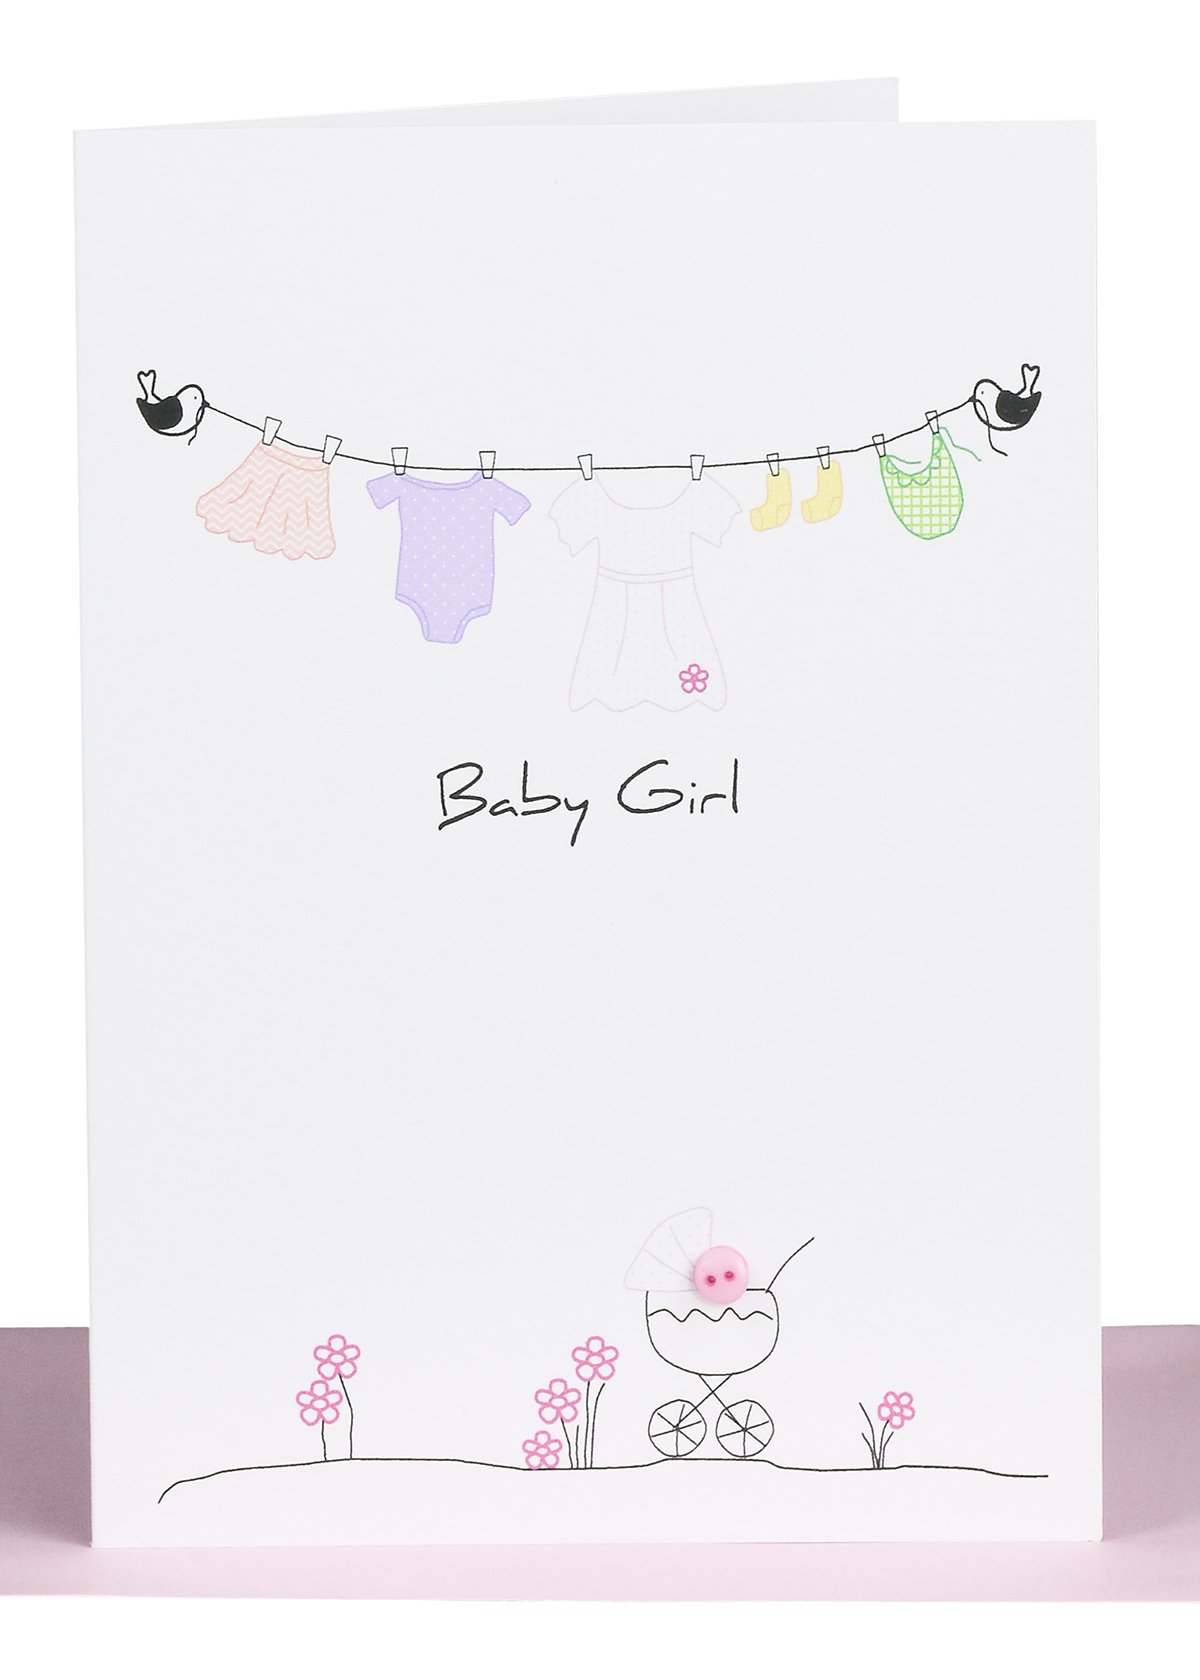 Baby girl greeting card lils wholesale handmade cards baby girl greeting card m4hsunfo